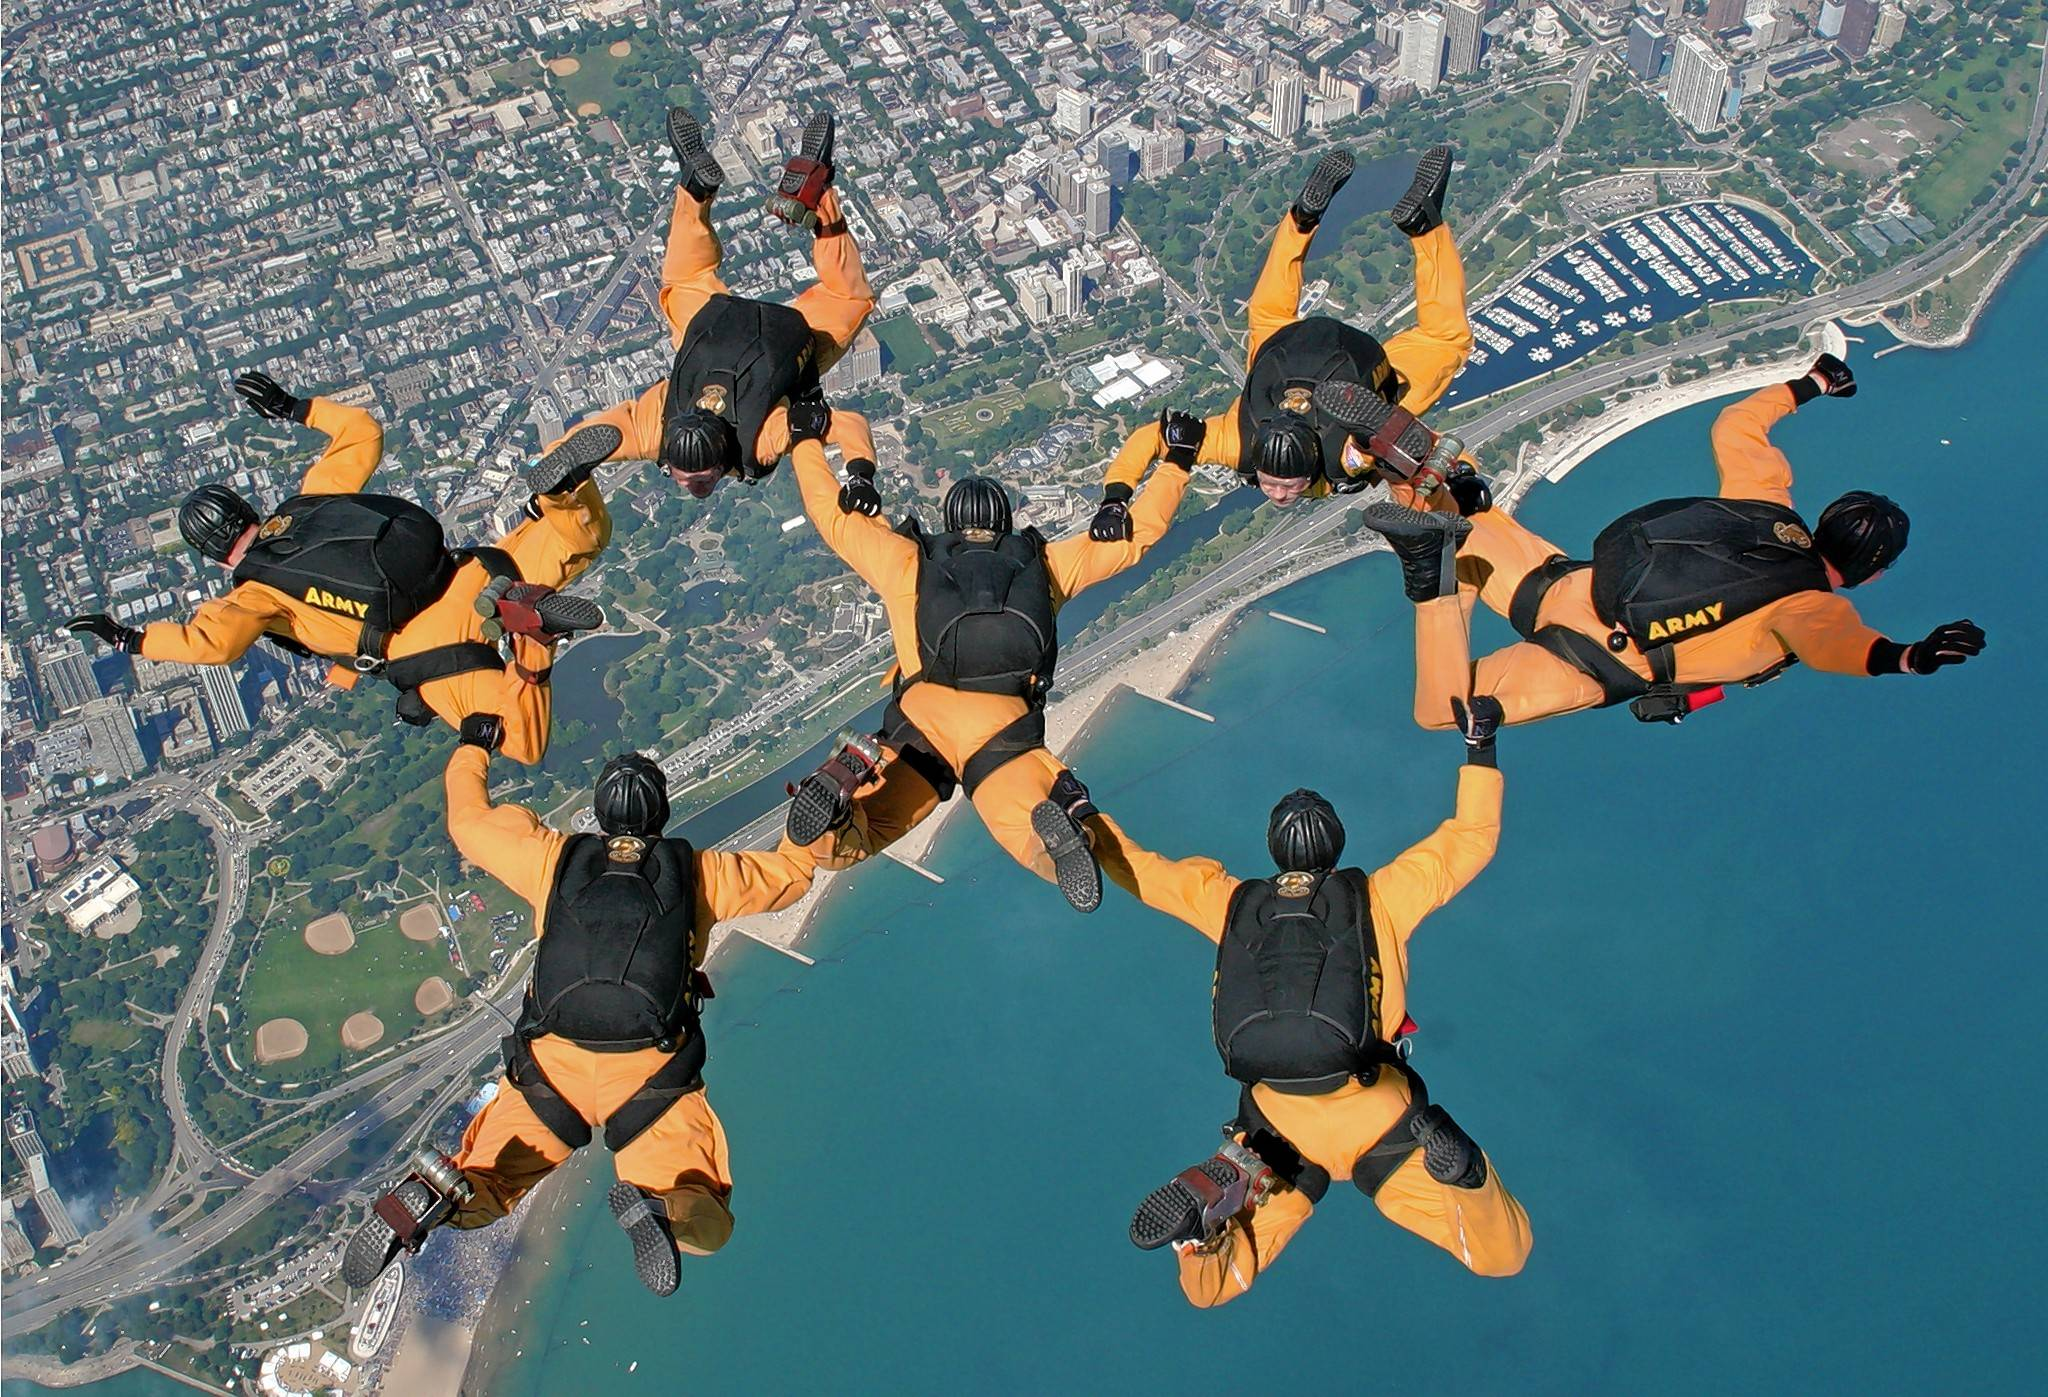 The U.S. Army Parachute Team Golden Knights will head toward the city at speeds reaching 180 miles per hour.